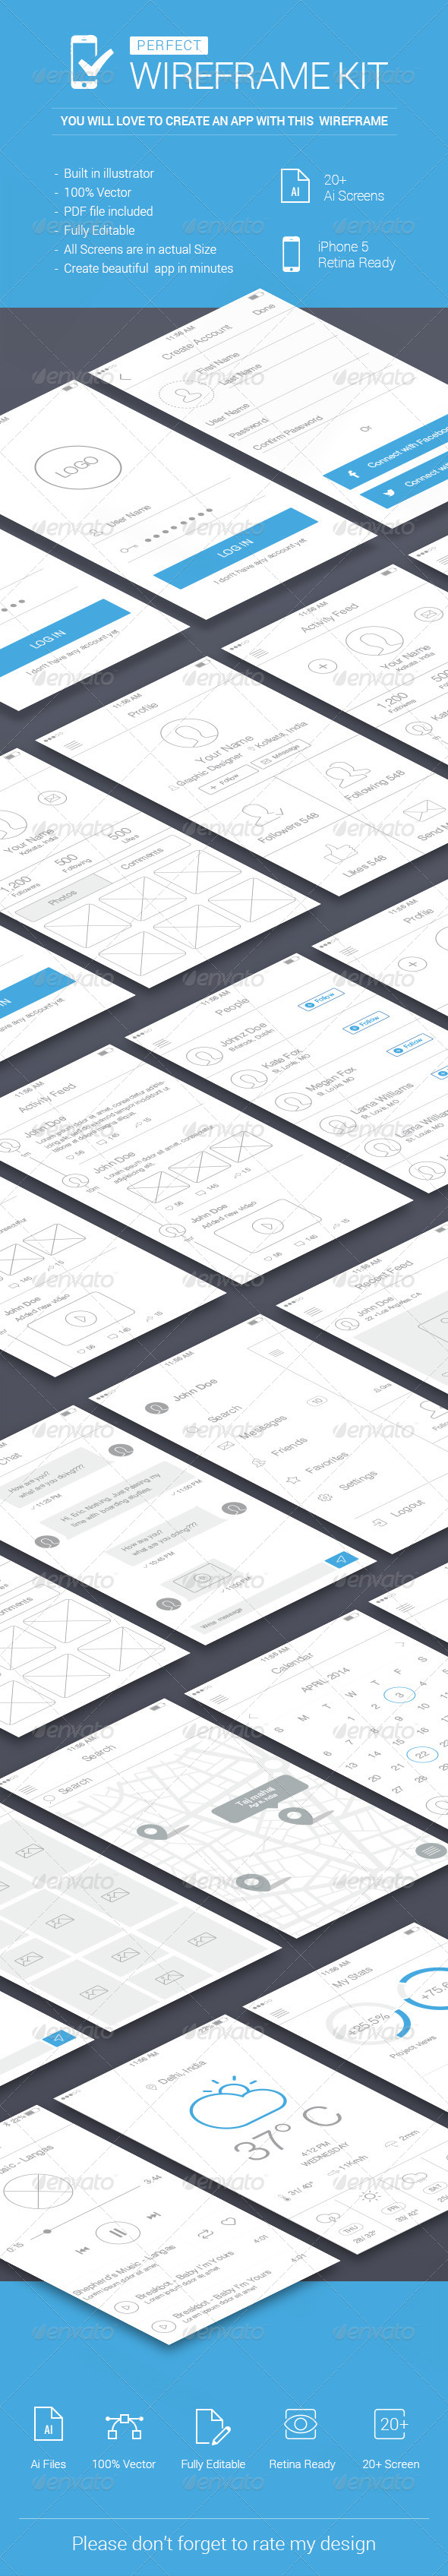 GraphicRiver iOS Wireframe Kit 7491852